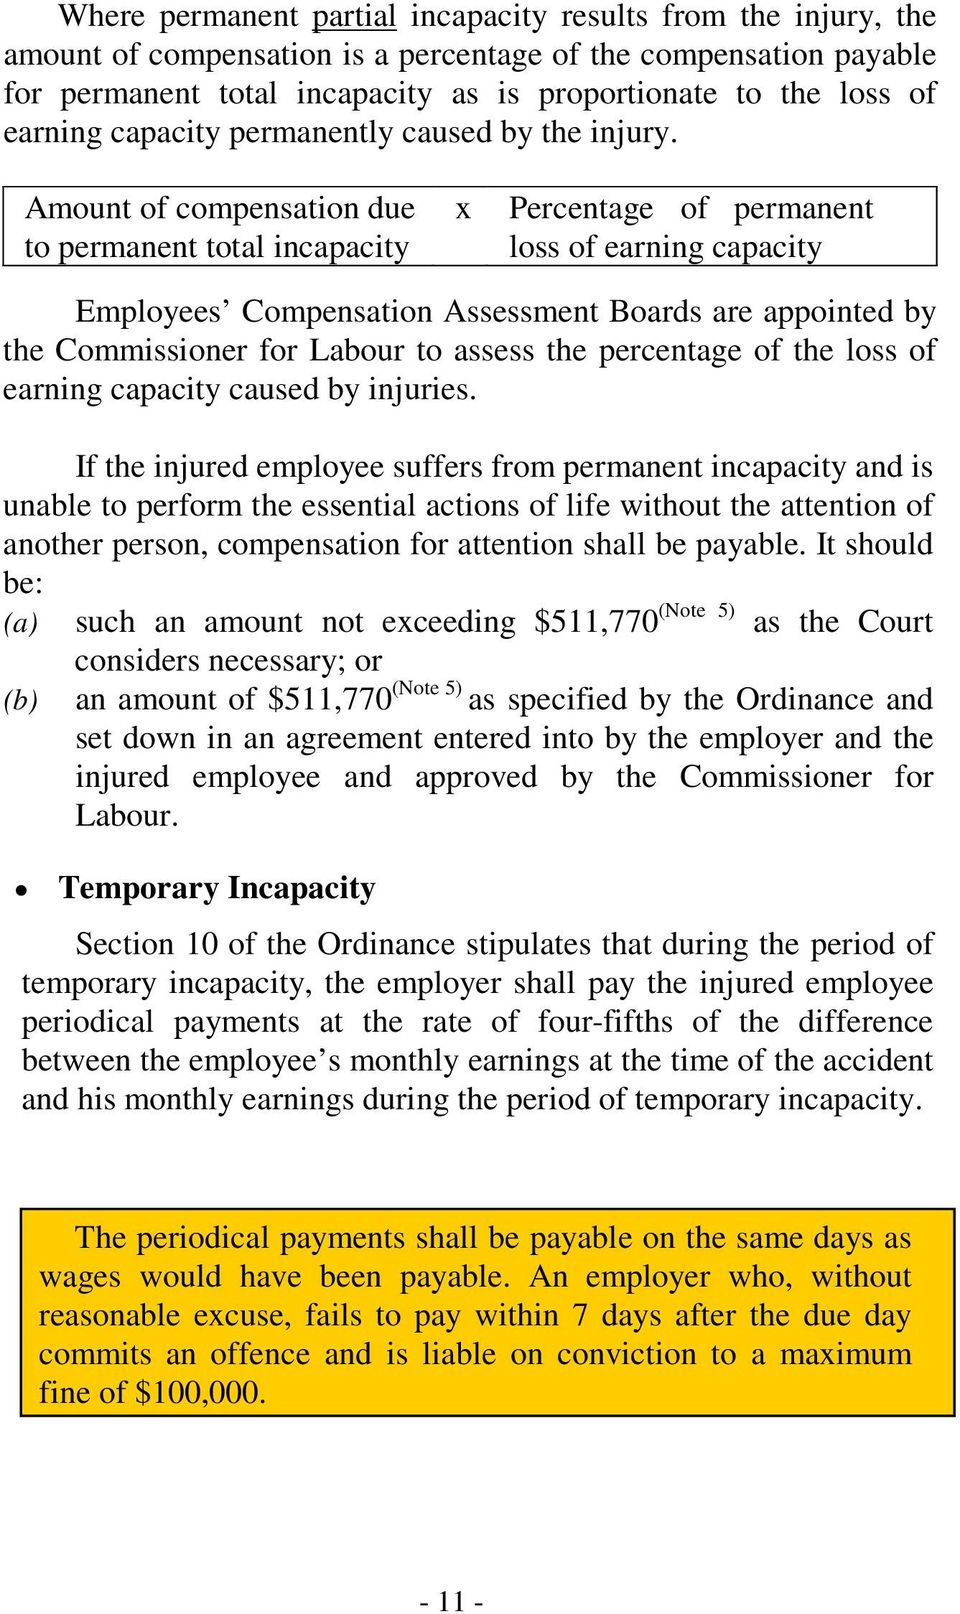 Amount of compensation due to permanent total incapacity x Percentage of permanent loss of earning capacity Employees Compensation Assessment Boards are appointed by the Commissioner for Labour to